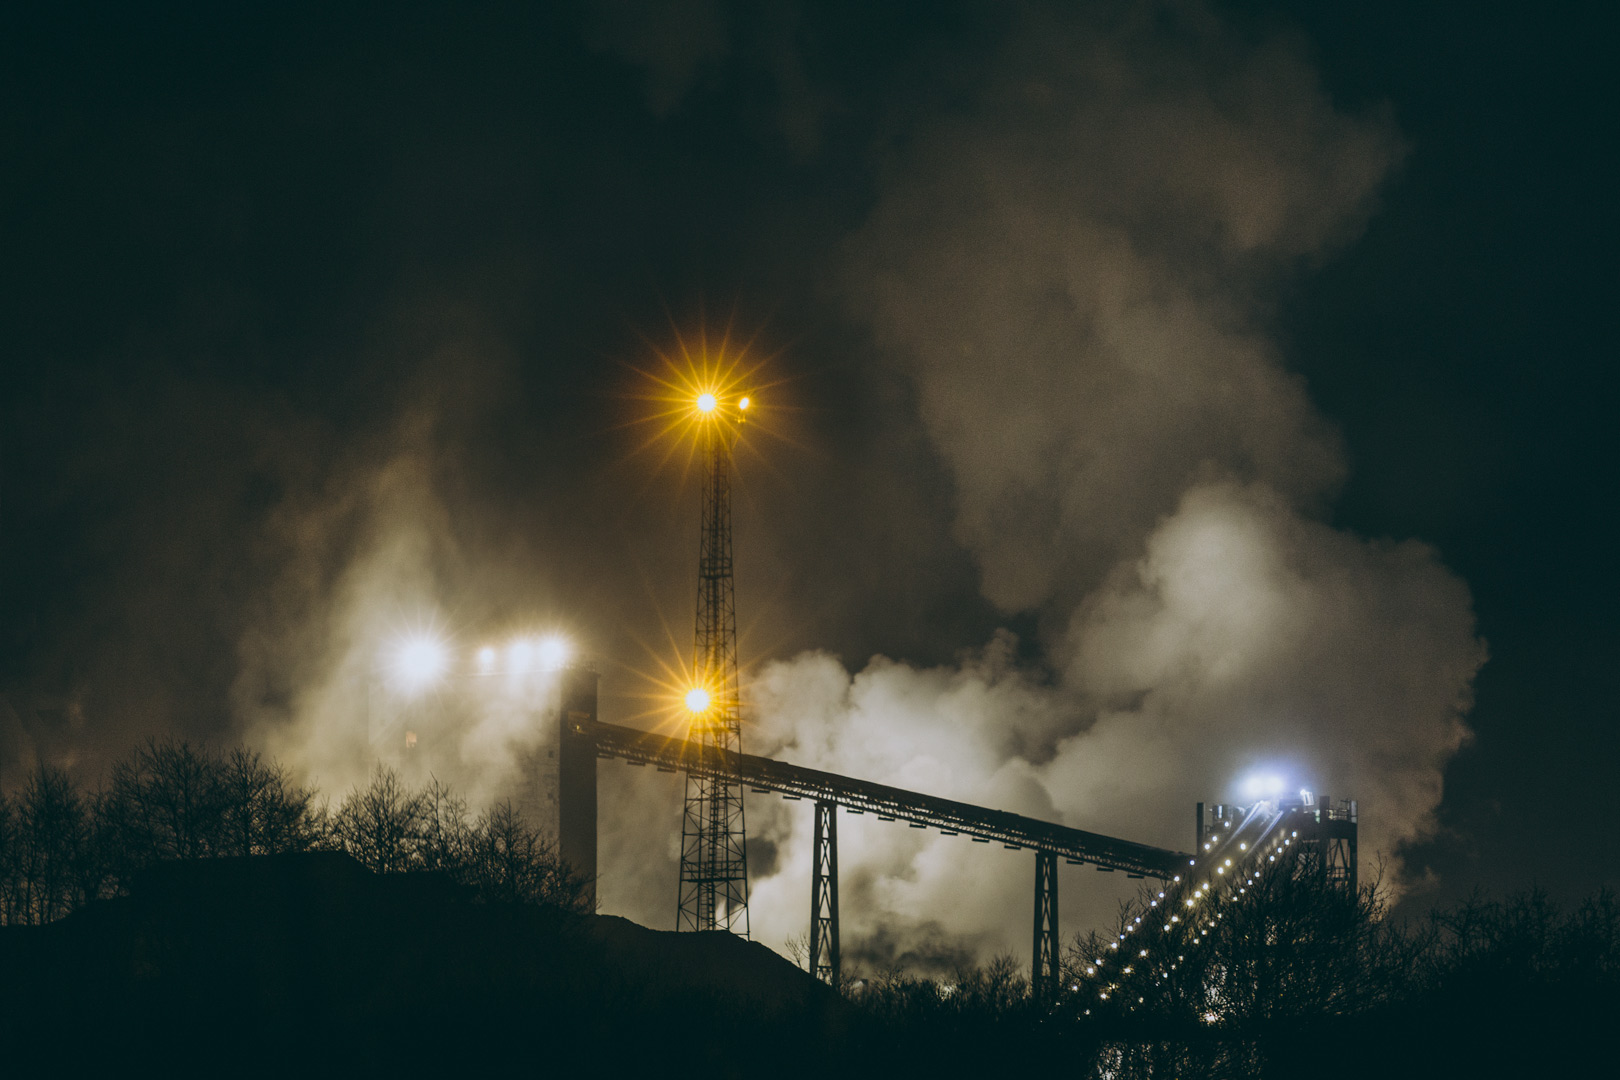 Port Talbot steelworks illuminated at night, Wales